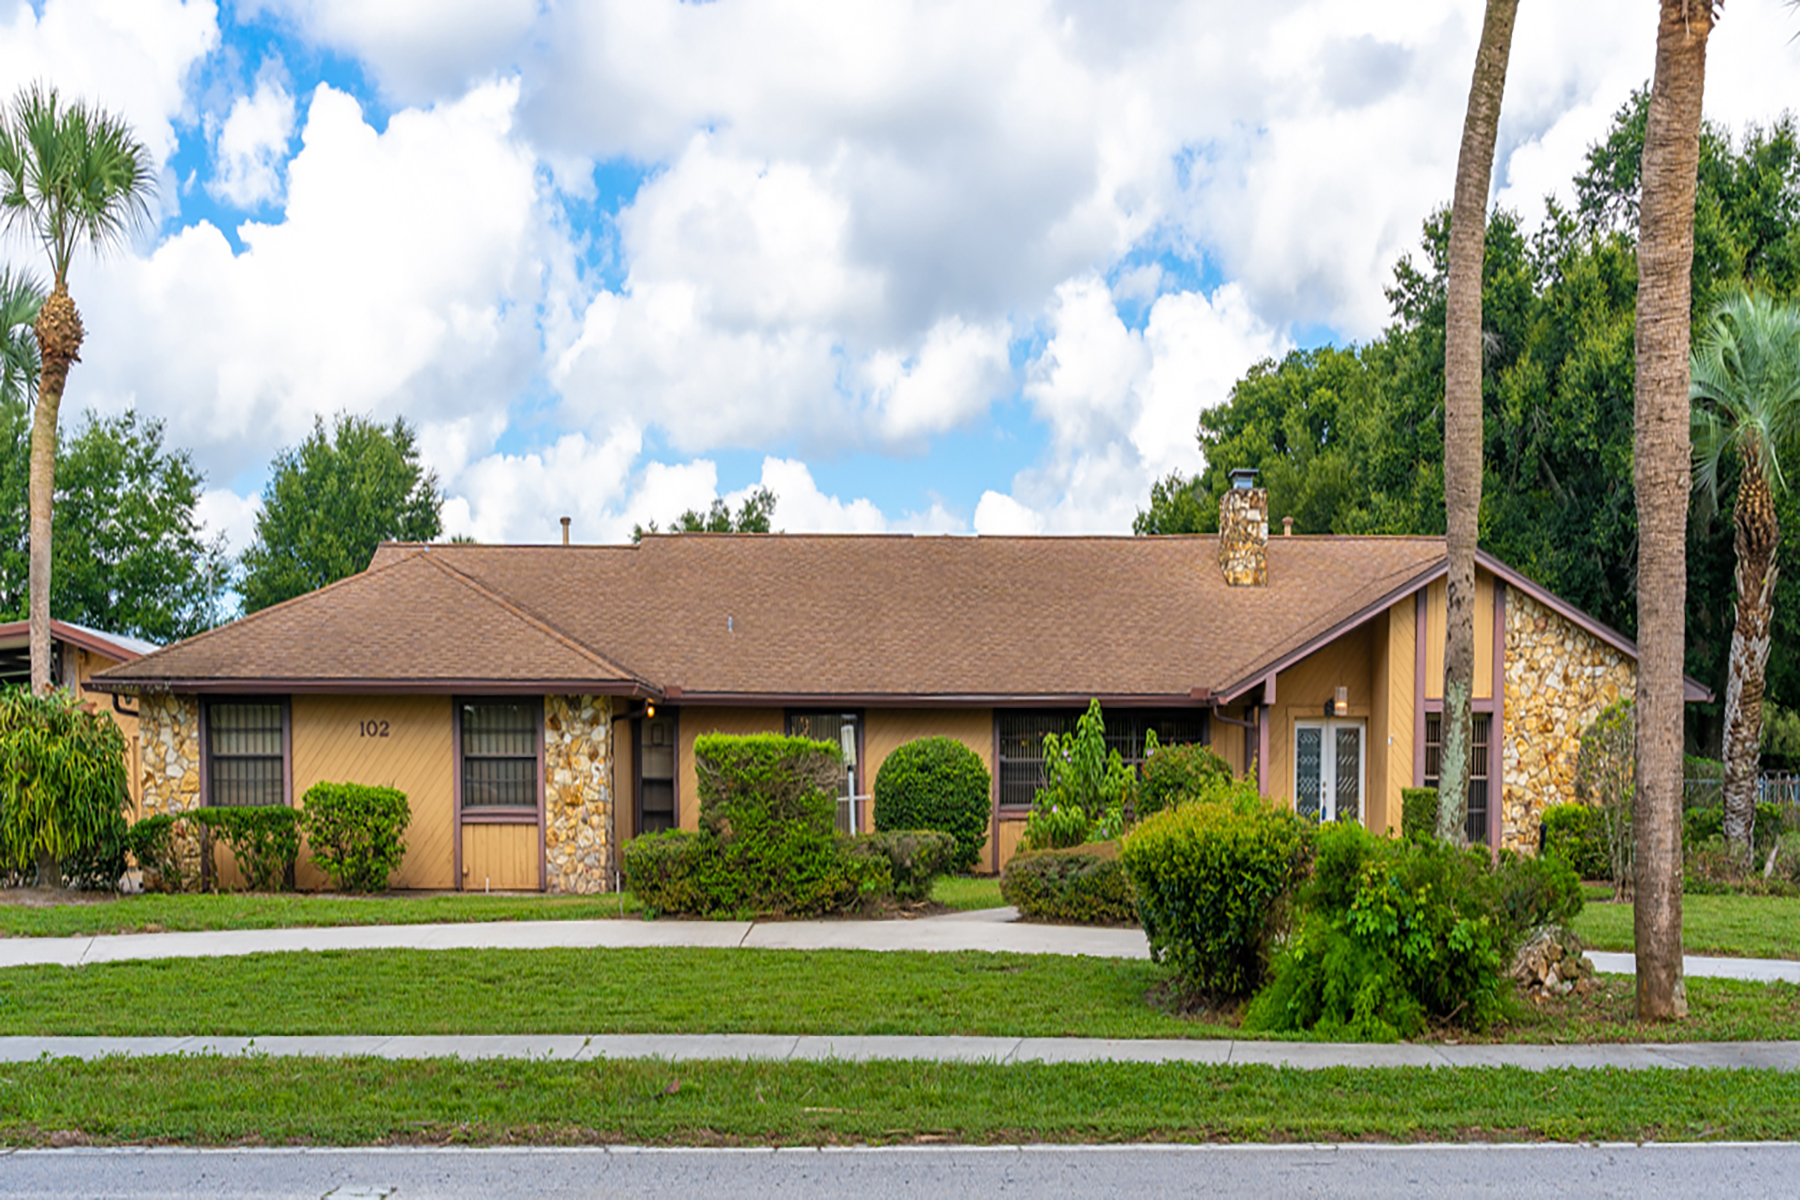 Single Family Homes for Active at ORLANDO - ALTAMONTE SPRINGS 102 Camden Rd Altamonte Springs, Florida 32714 United States